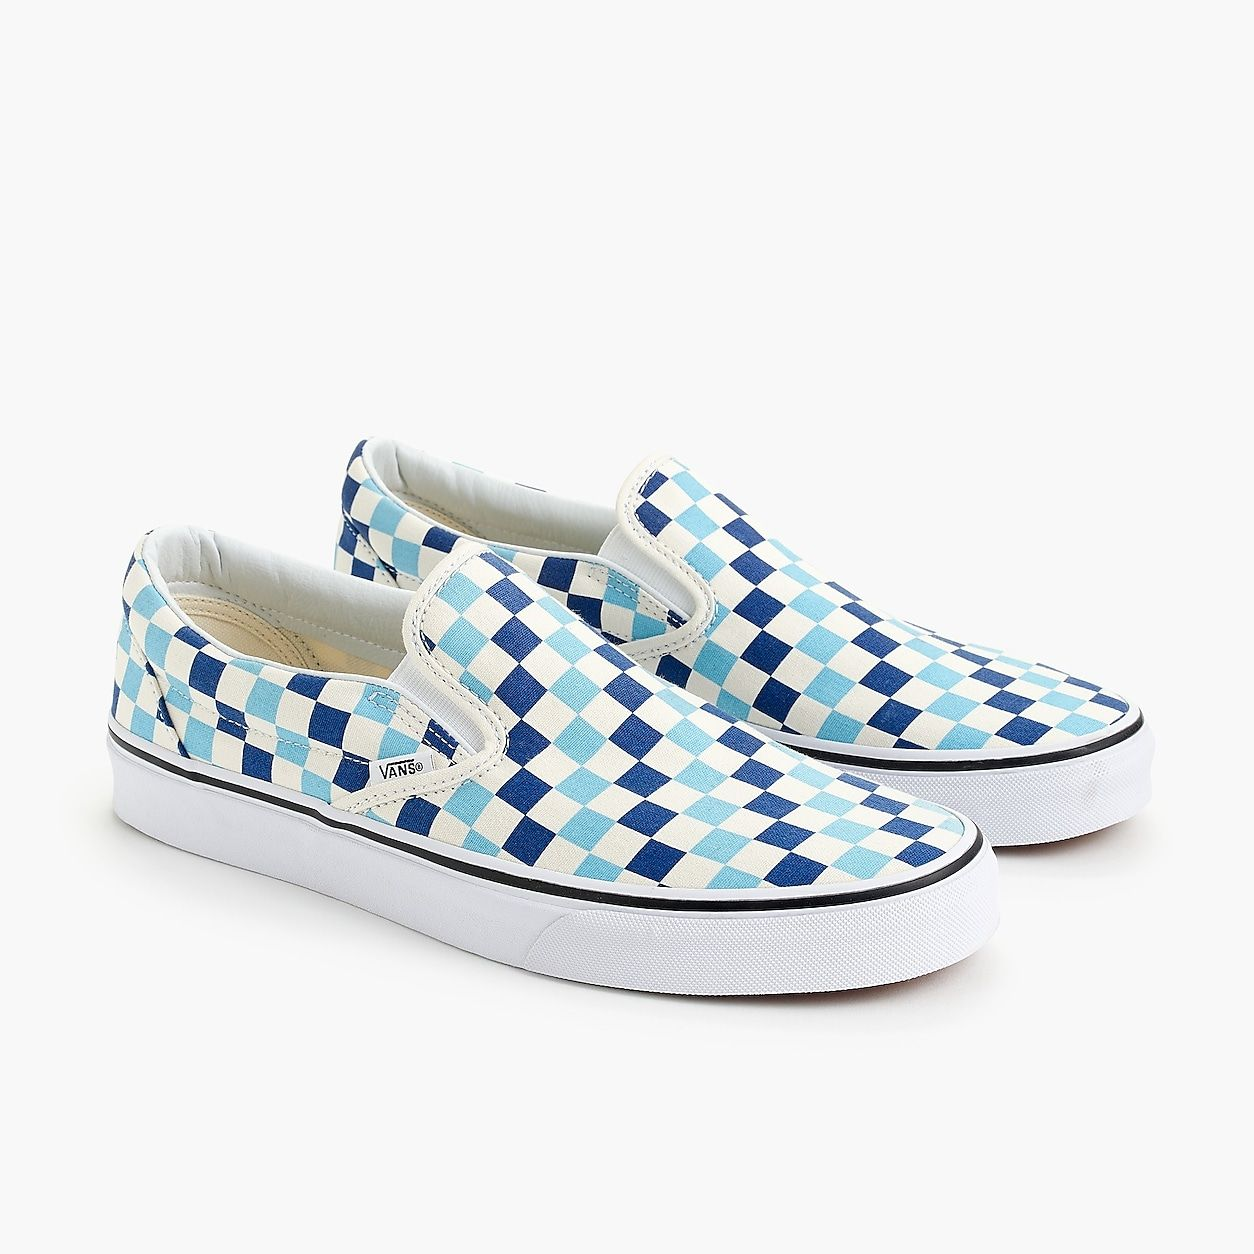 5023b75baf9 Vans Slip-On Sneakers In Blue Checkerboard